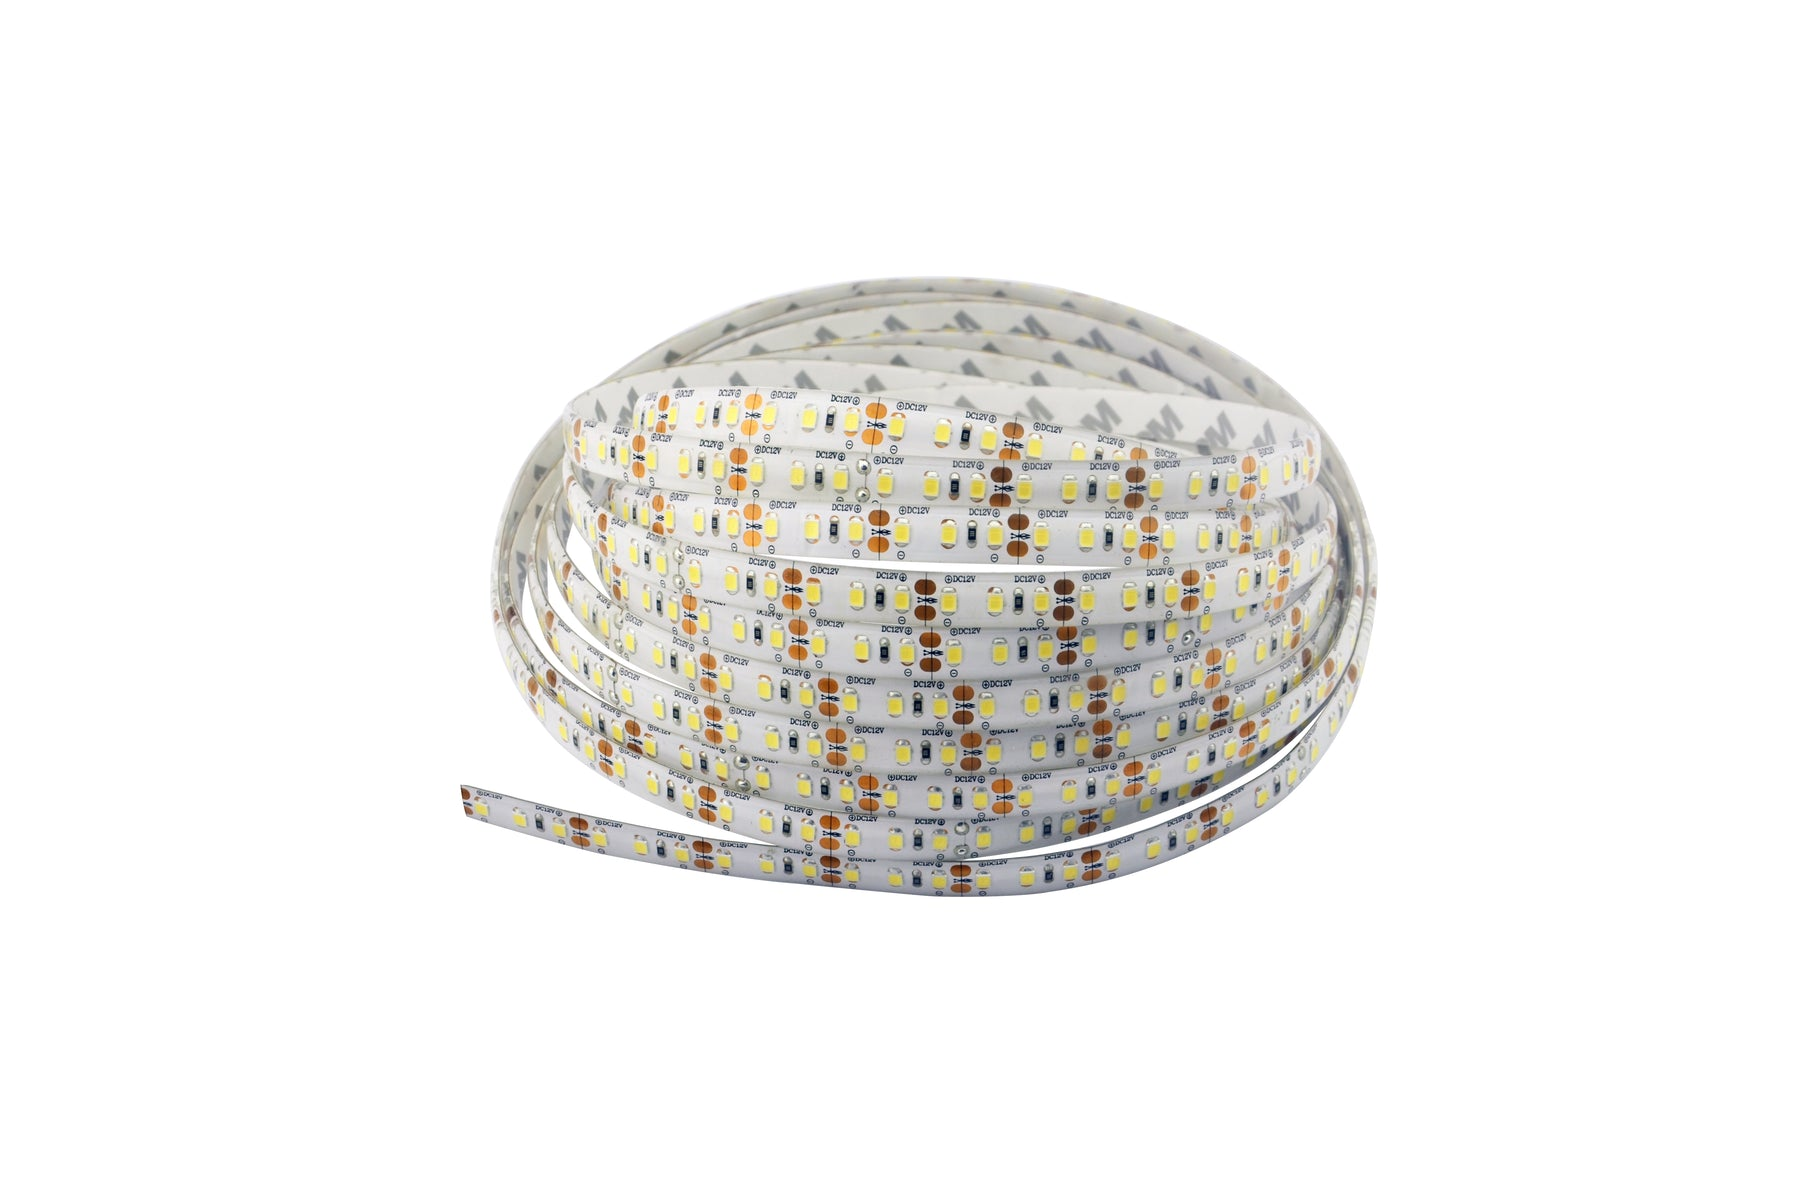 5M DC12V 12W DOTLESS IP65 LED STRIP - LEDLIGHTMELBOURNE